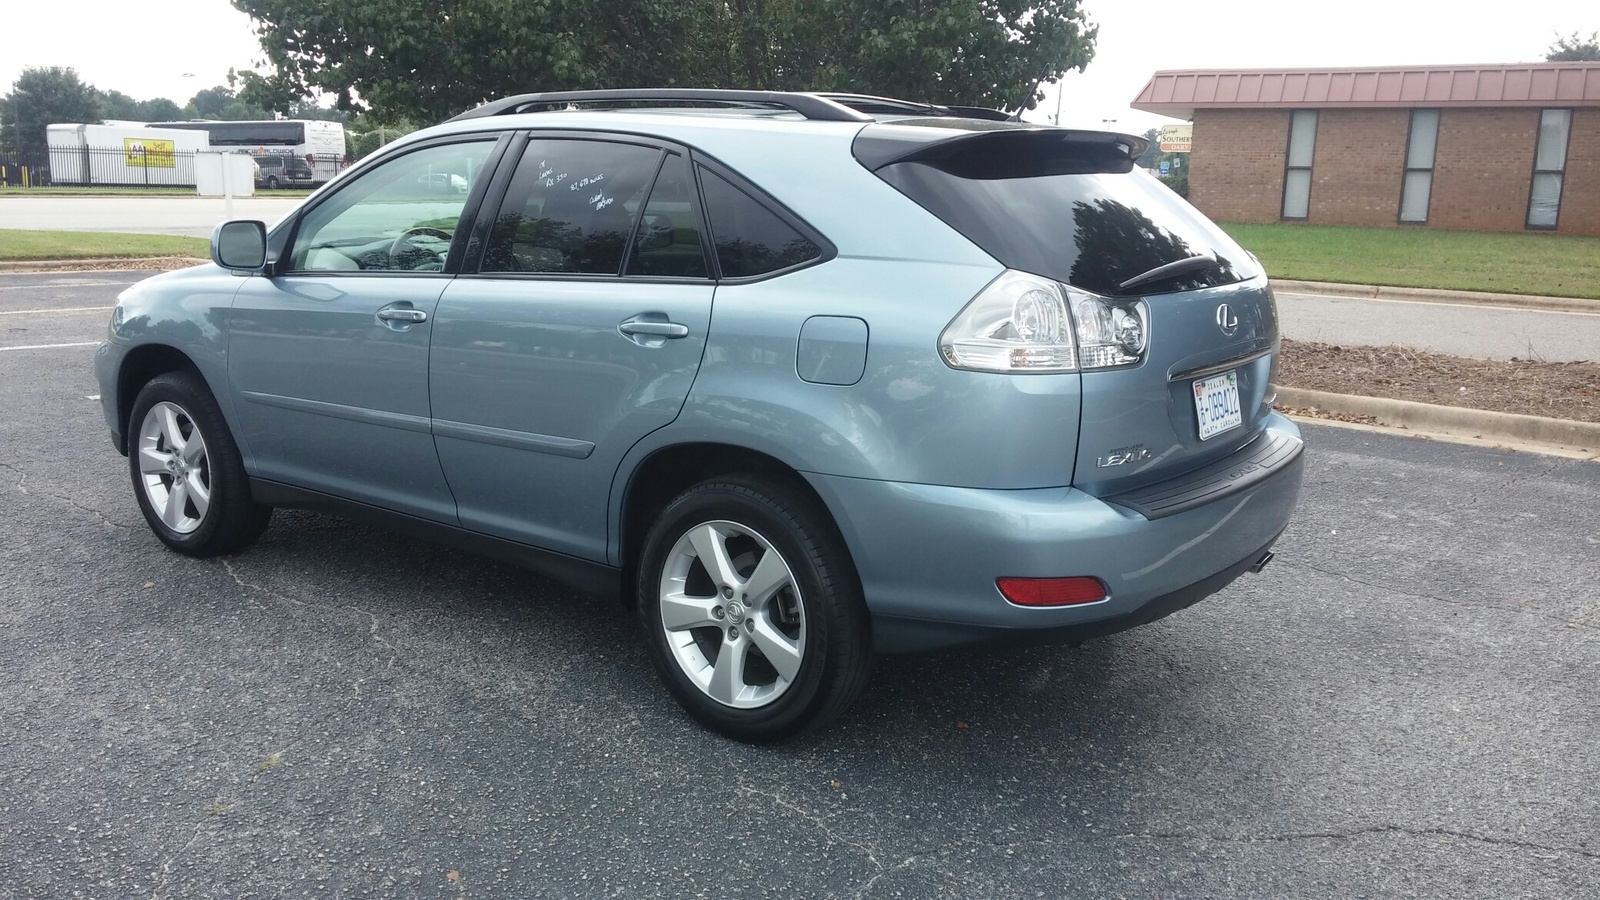 lexus 330 suv with 2004 Lexus Rx 330 Overview C2507 on 2015 Lexus Nx 200t F Sport in addition 2018 Ford Edge Sport Releases besides Toyota harrier a1250685021b2966918 p besides Lexus rc 350 2015 moreover 2012 Lexus Rx 350 Pictures C23080 pi36366582.